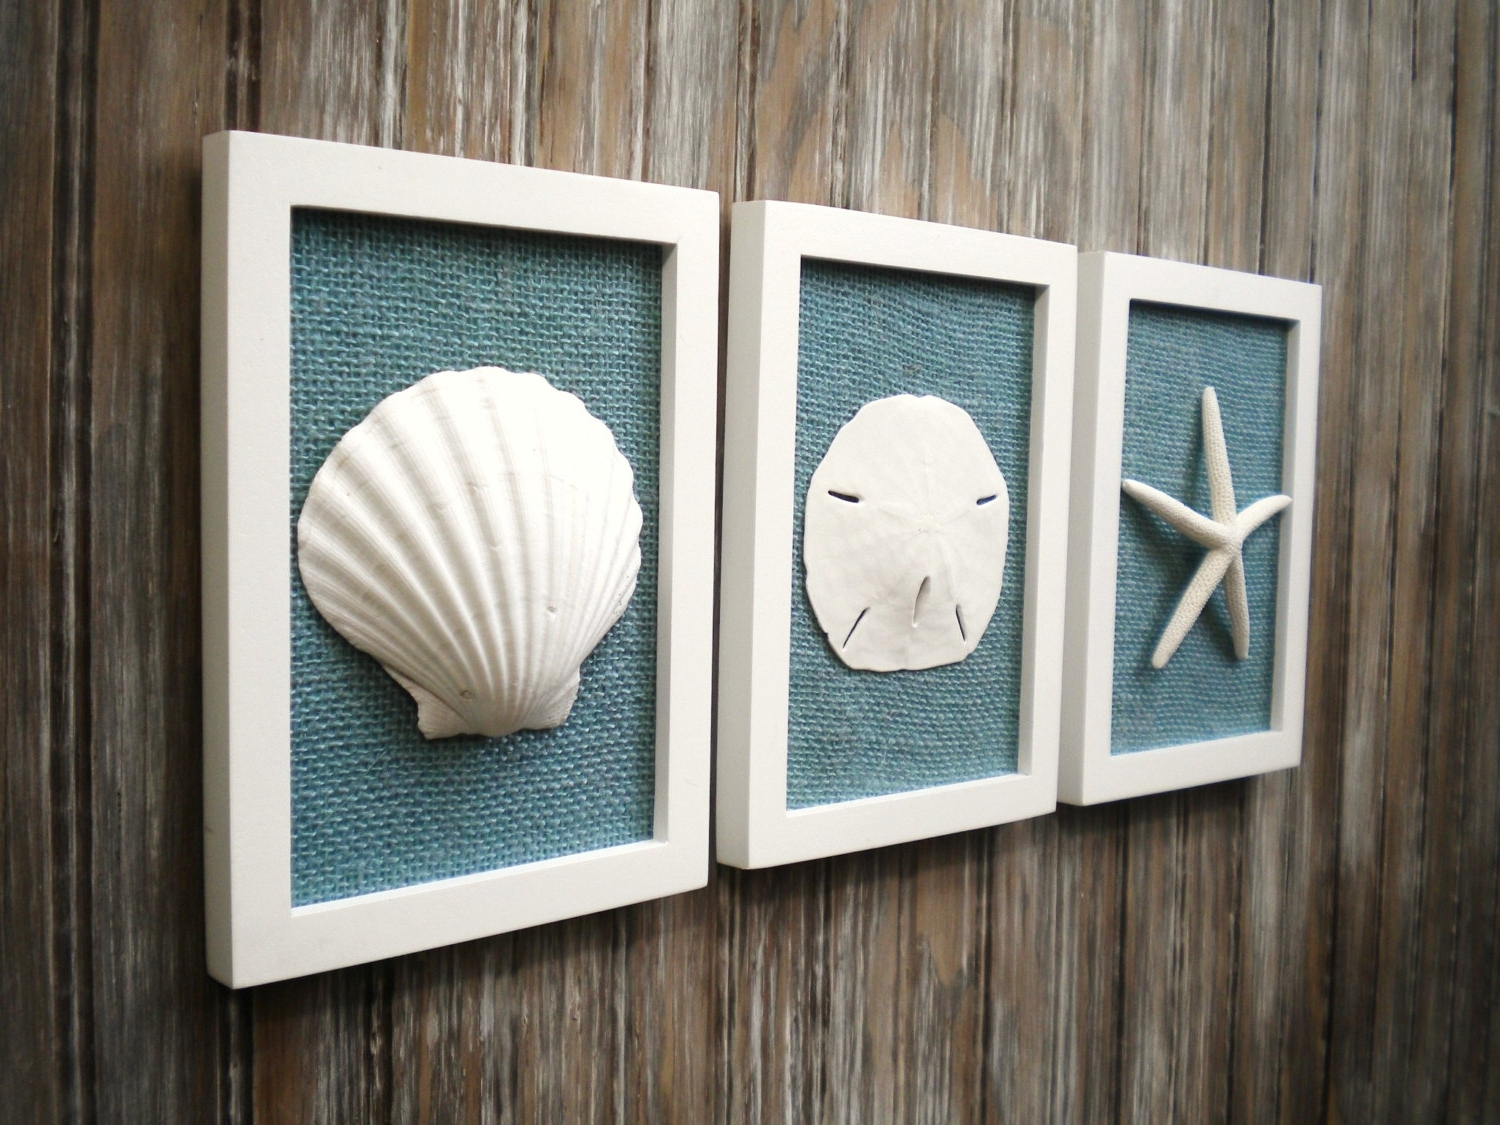 Nautical Canvas Wall Art Intended For Well Known Wall Art: Best Sample Ideas Beach Wall Art Decor Ocean Wall Art (View 14 of 15)